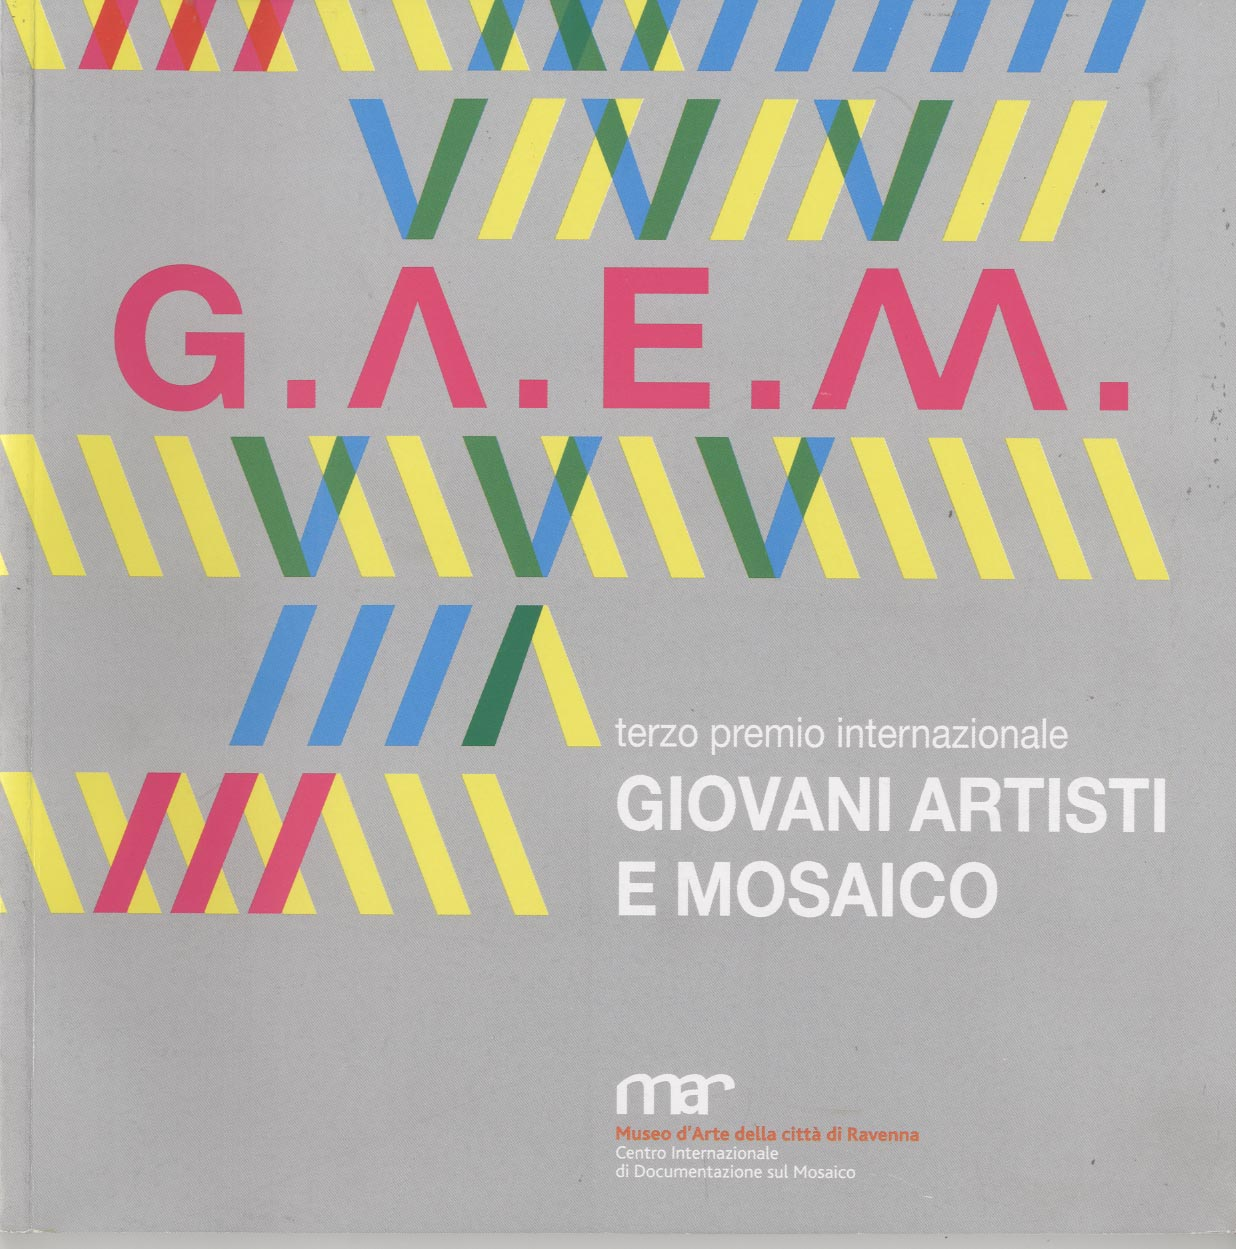 G.A.E.M. Premio internazionale Giovani Artisti e Mosaico.  3° international prize Young Artists and Mosaic